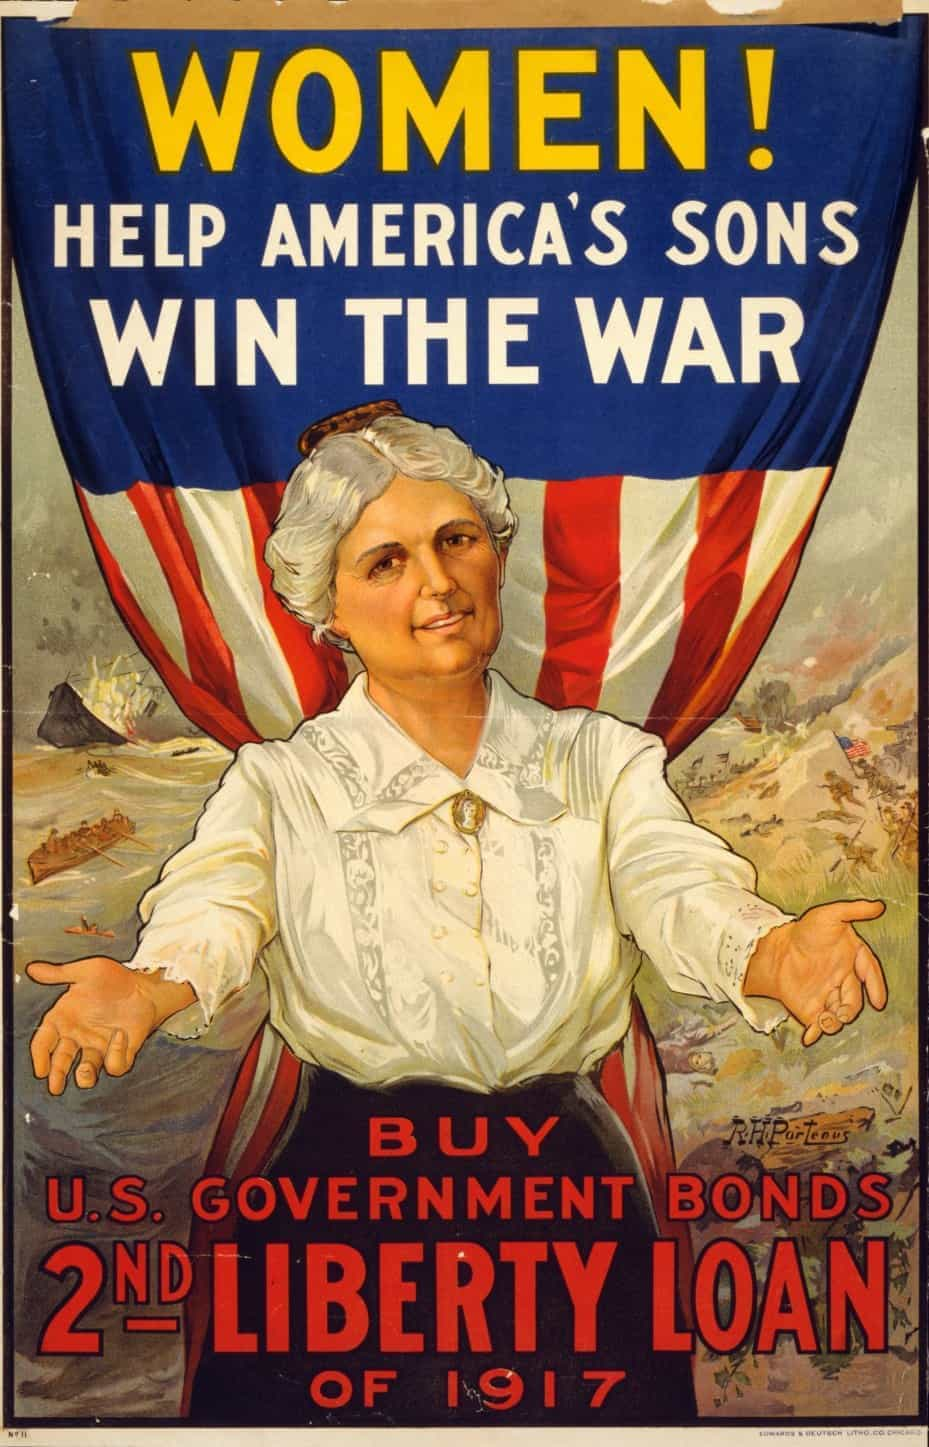 world war i and propaganda World war i propaganda posters scott fields, mckeel academy i lesson summary summary in this lesson, students will examine world war i posters from the united states in order to learn.